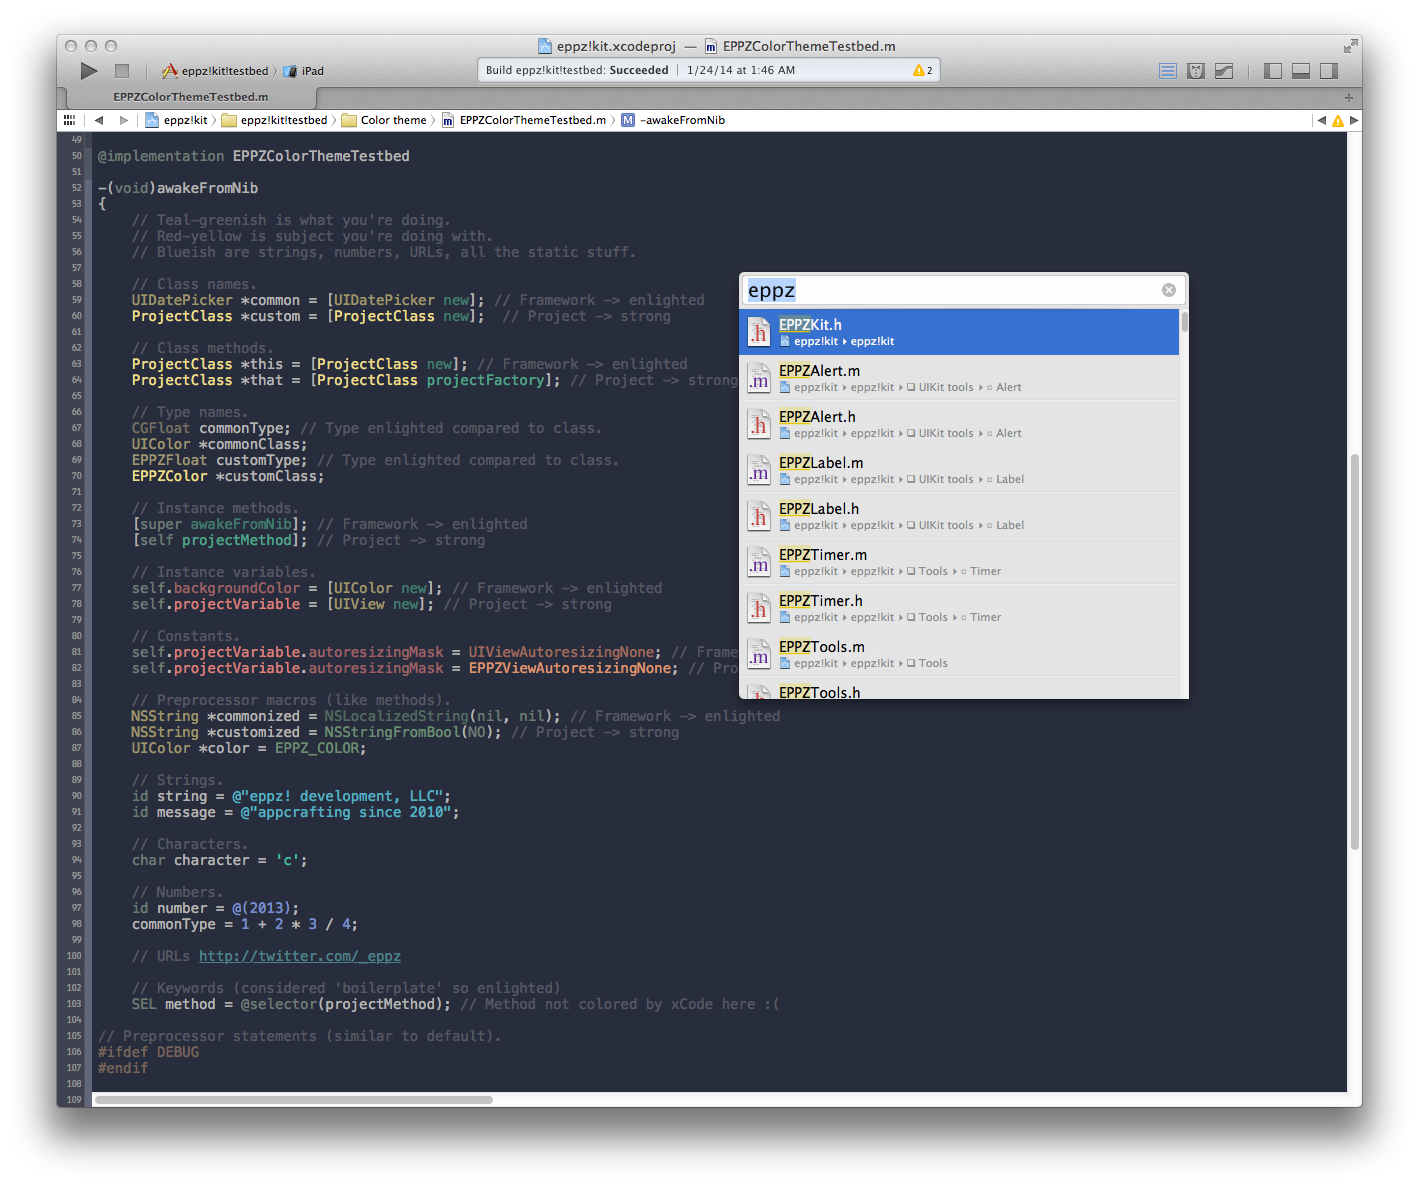 Using eppz!xCode color scheme with a fullscreen code view. Hiding unnecessary tools/panels keeps you focused on the code you're really doing.